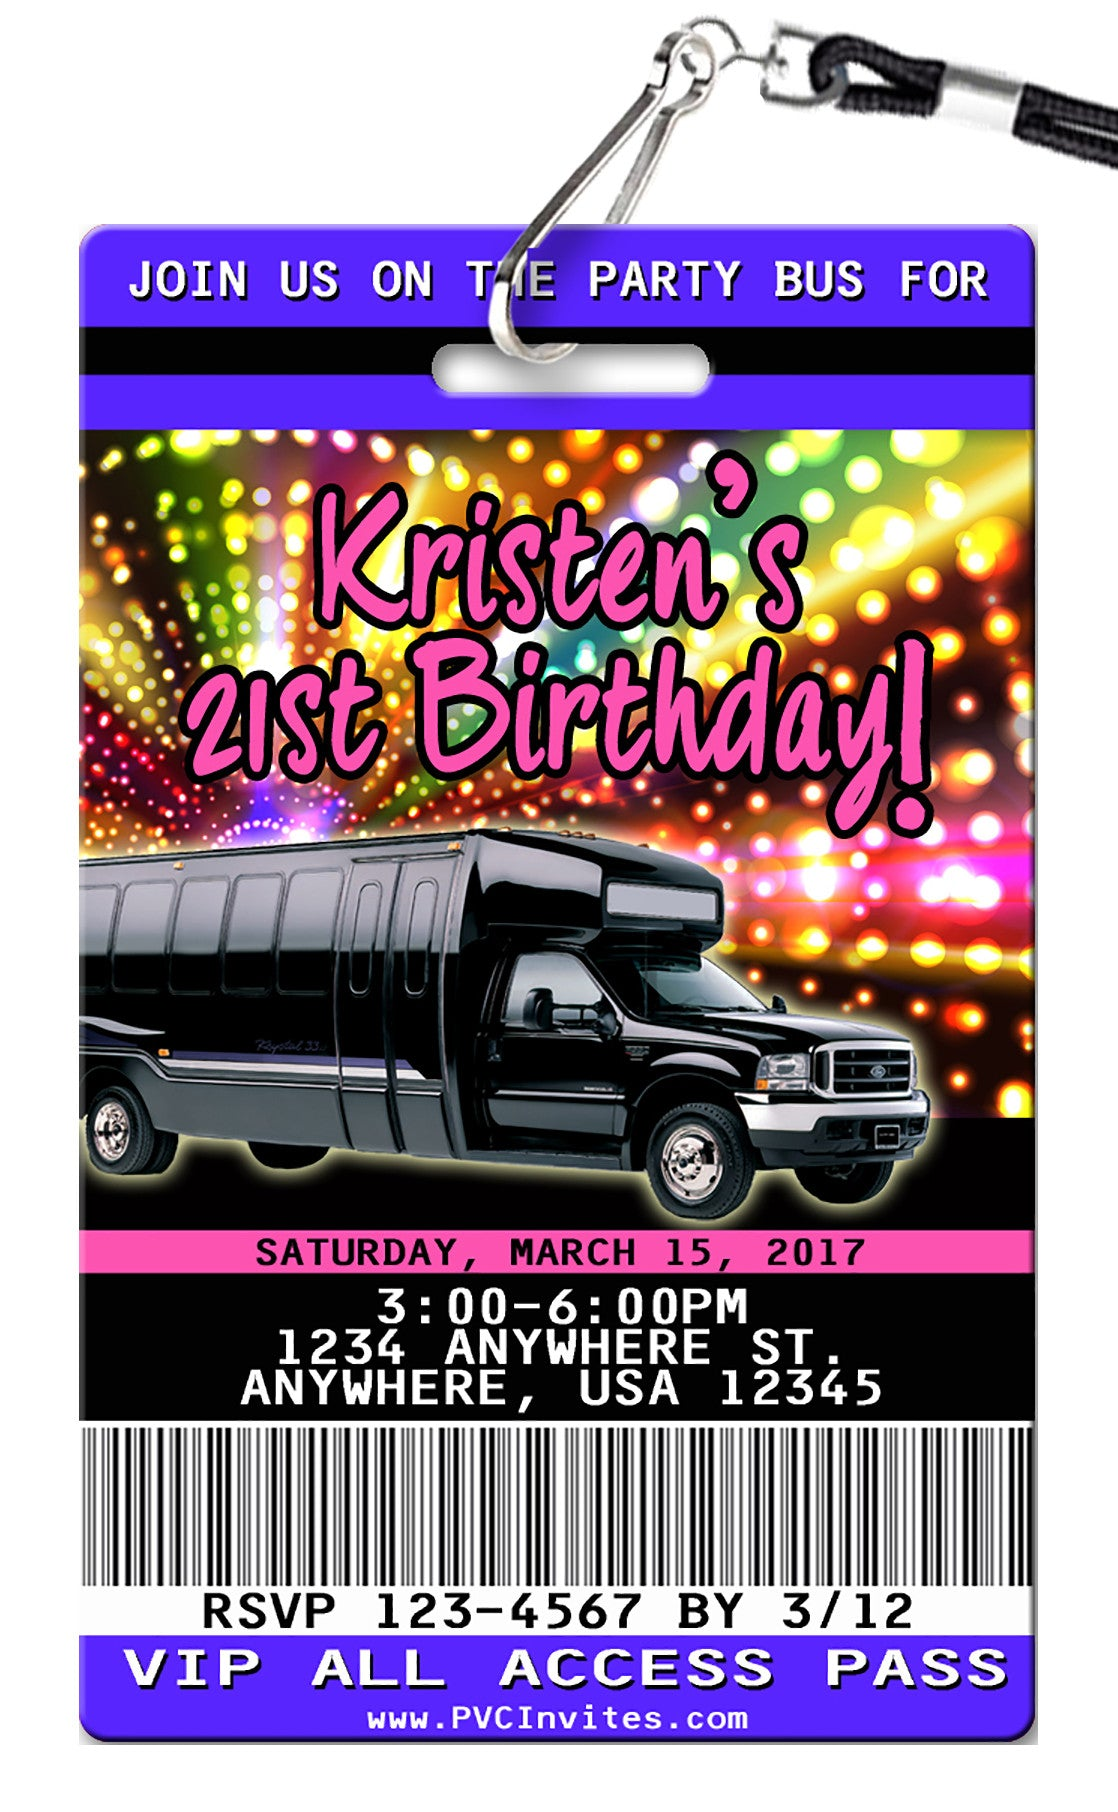 Party bus birthday invitations pvc invites vip birthday party bus birthday invitations stopboris Image collections